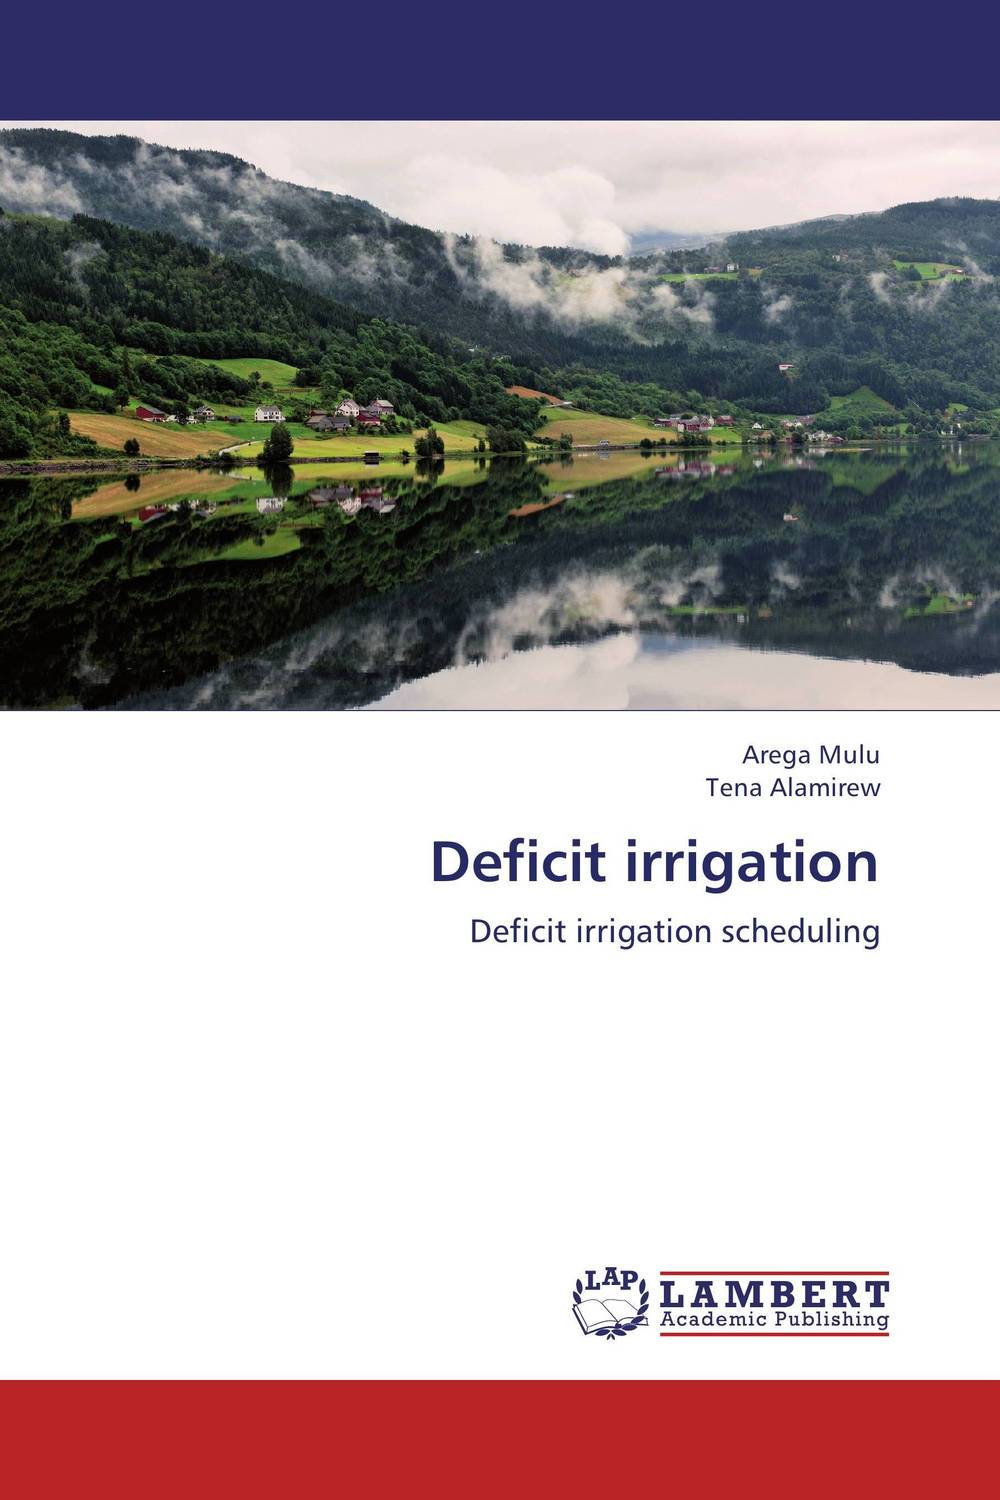 Deficit irrigation margaretha dramsdahl adults with attention deficit hyperactivity disorder